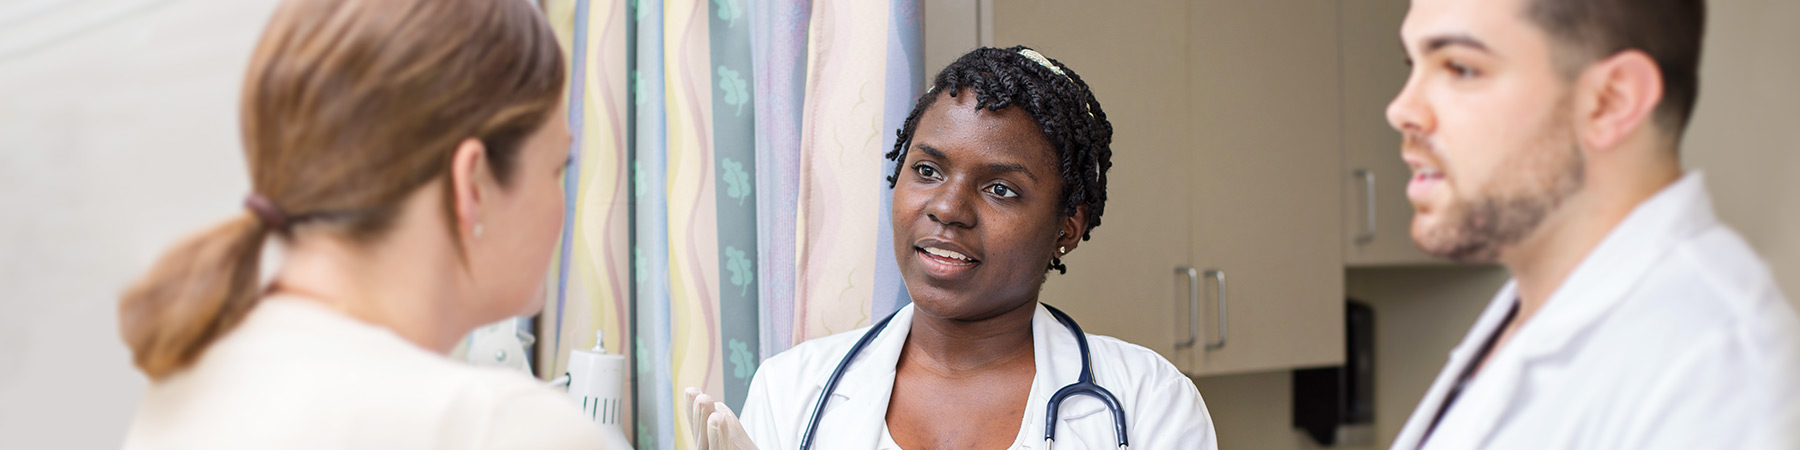 What Does a Primary Care Physician Do? MDs Explain : Medical